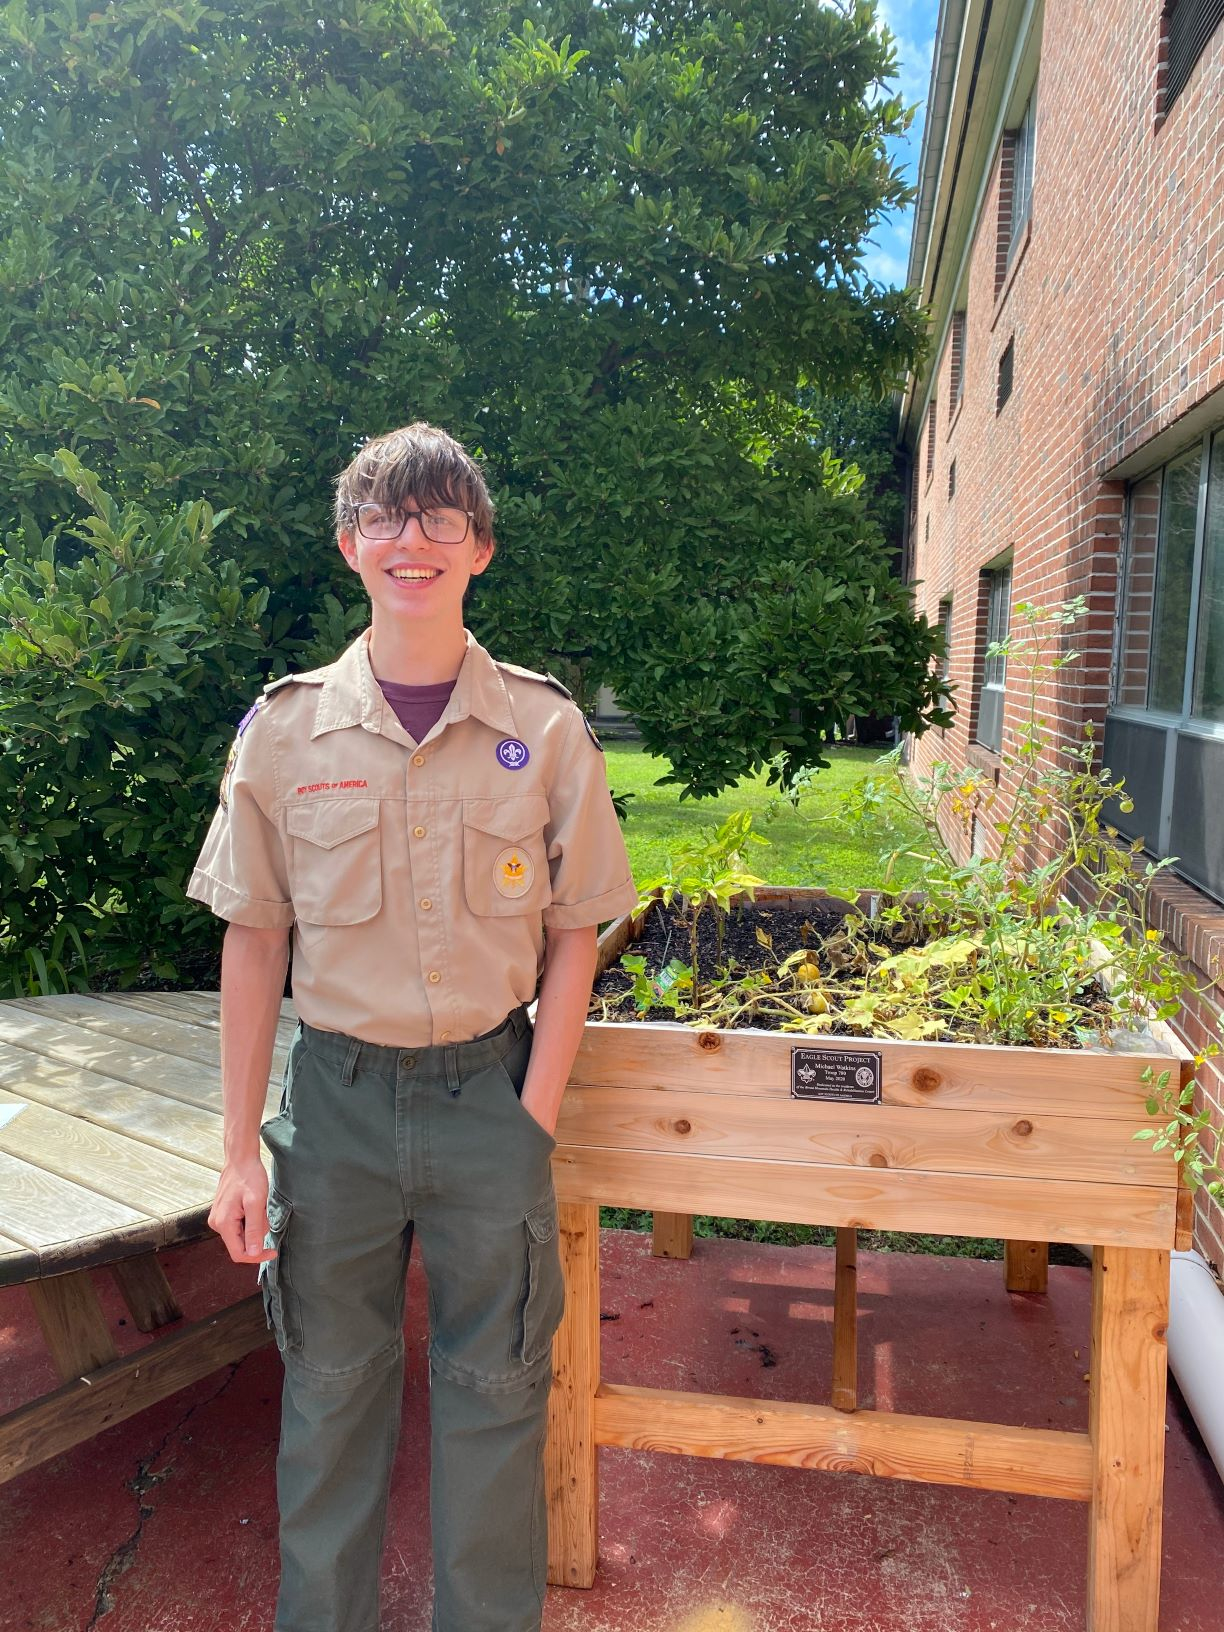 Boy Scout Builds Planters for Local Facility